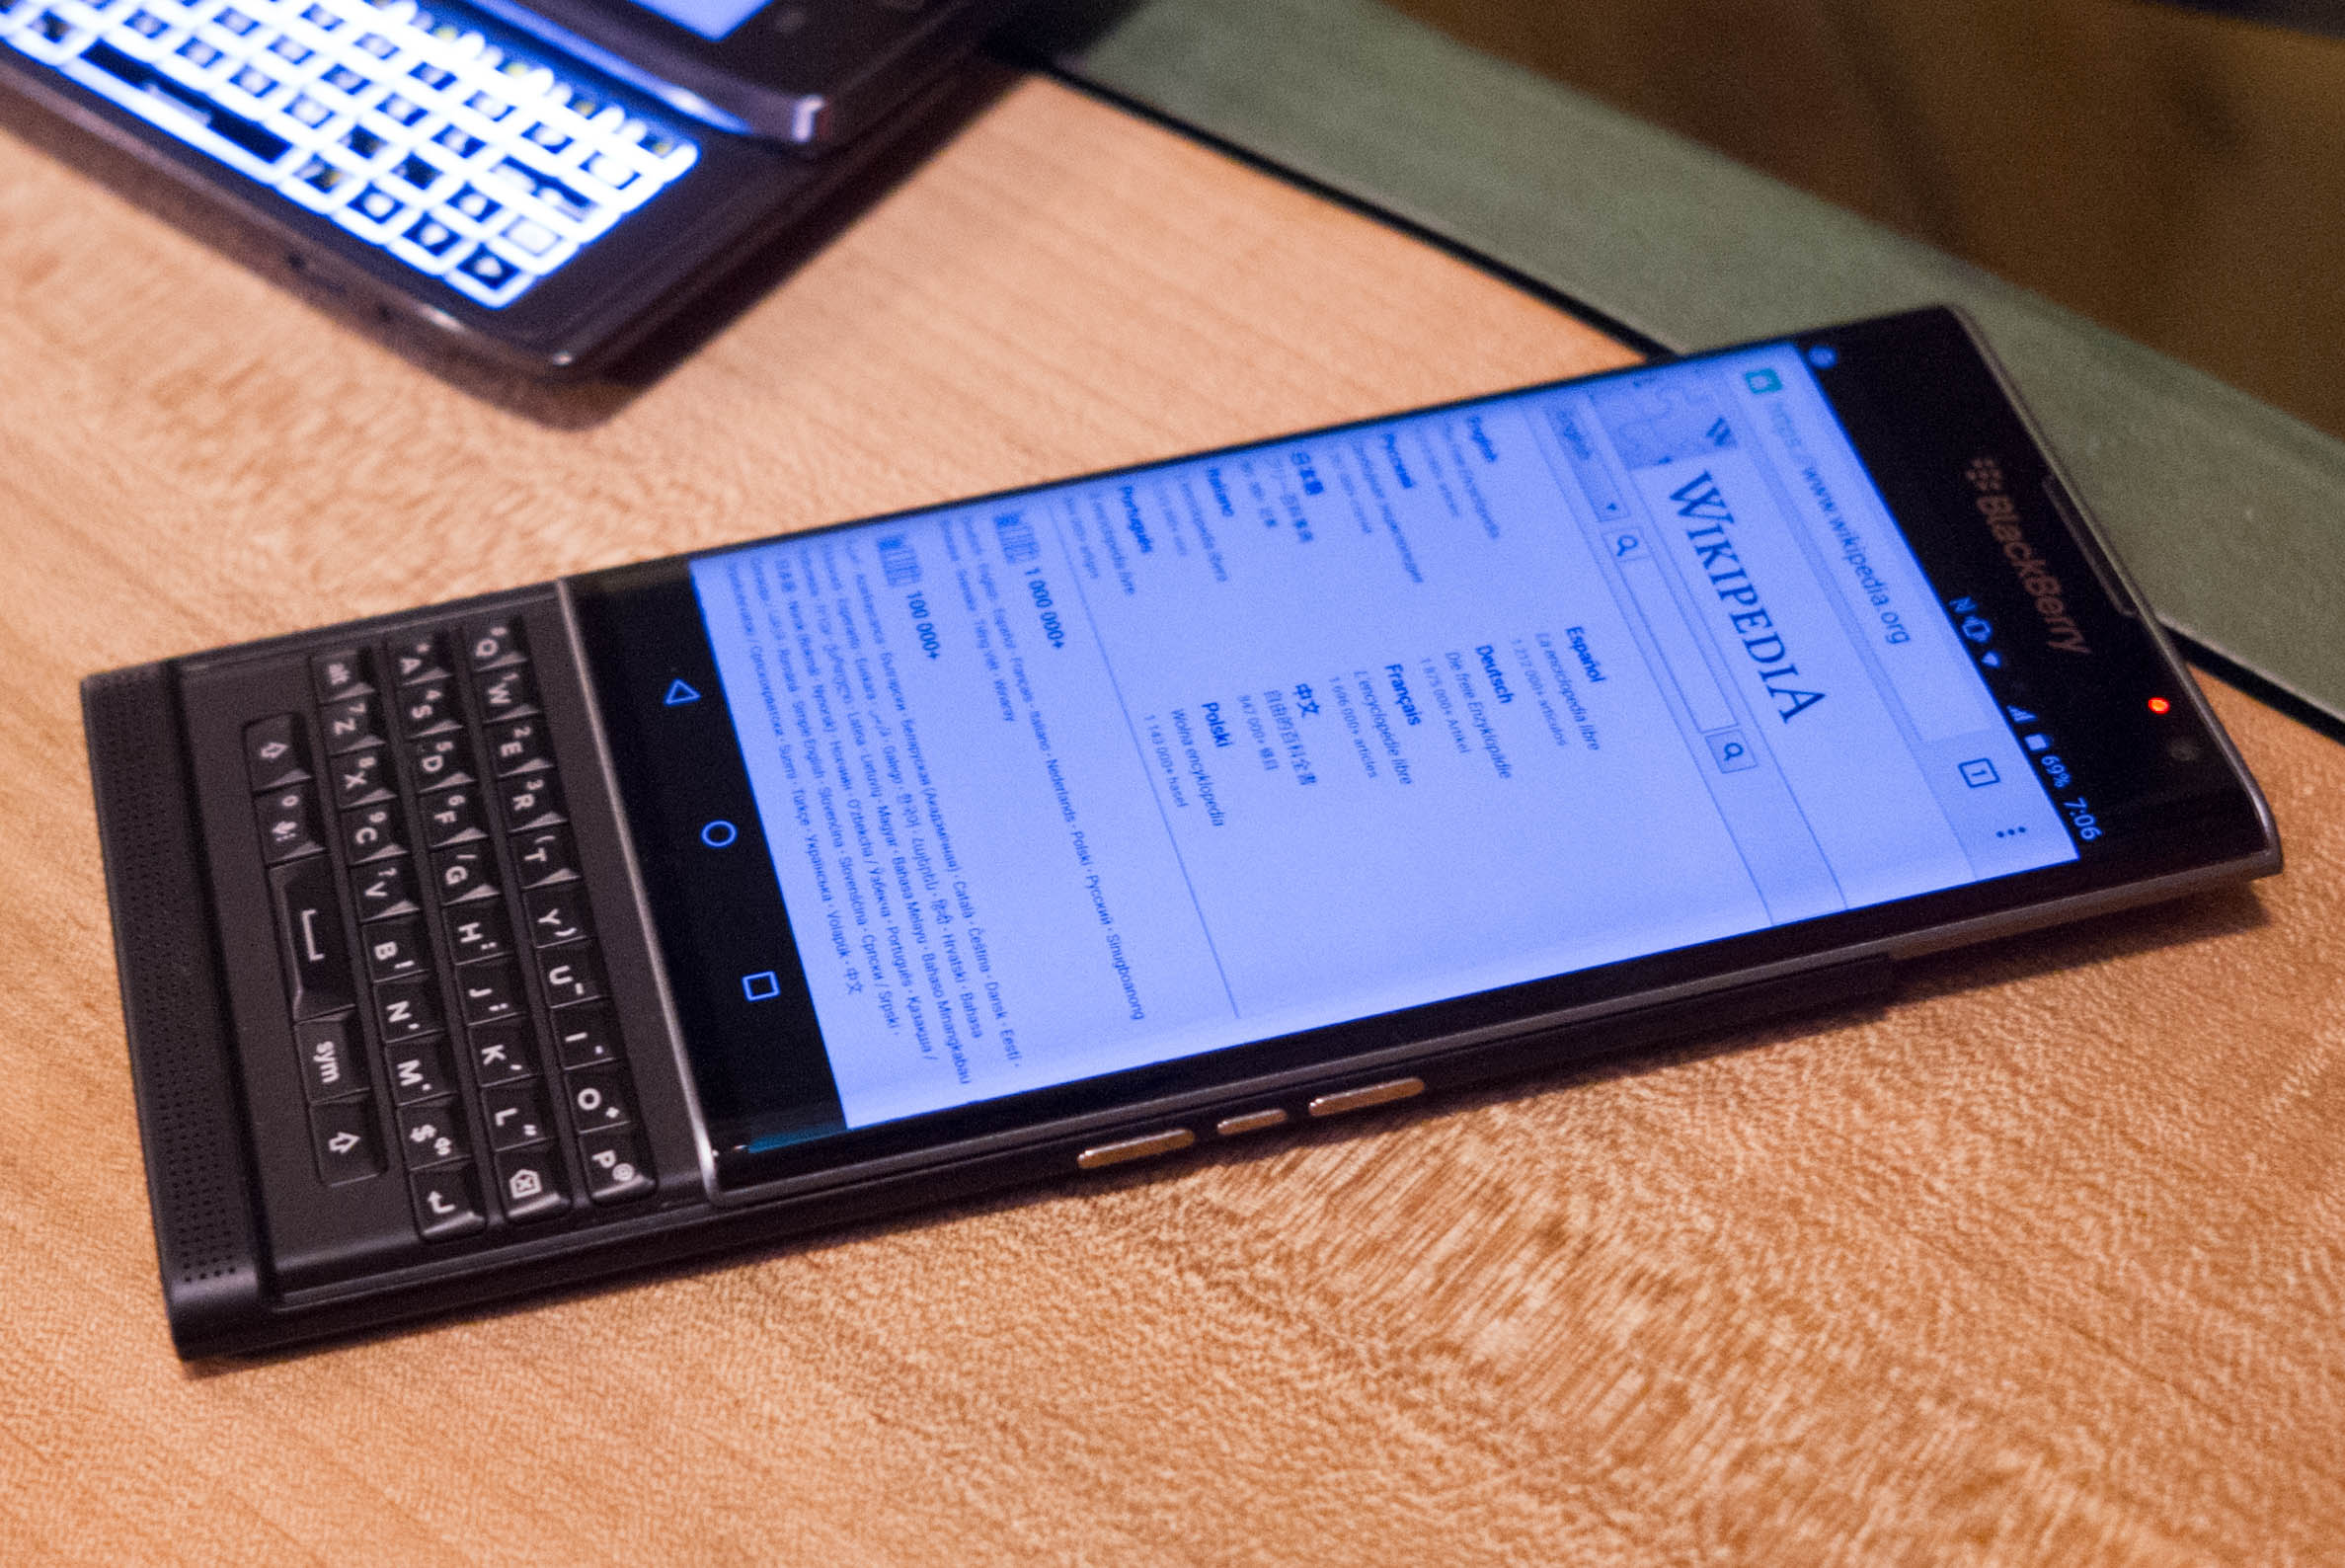 Final full keyboard BlackBerry spy photos are really beautiful